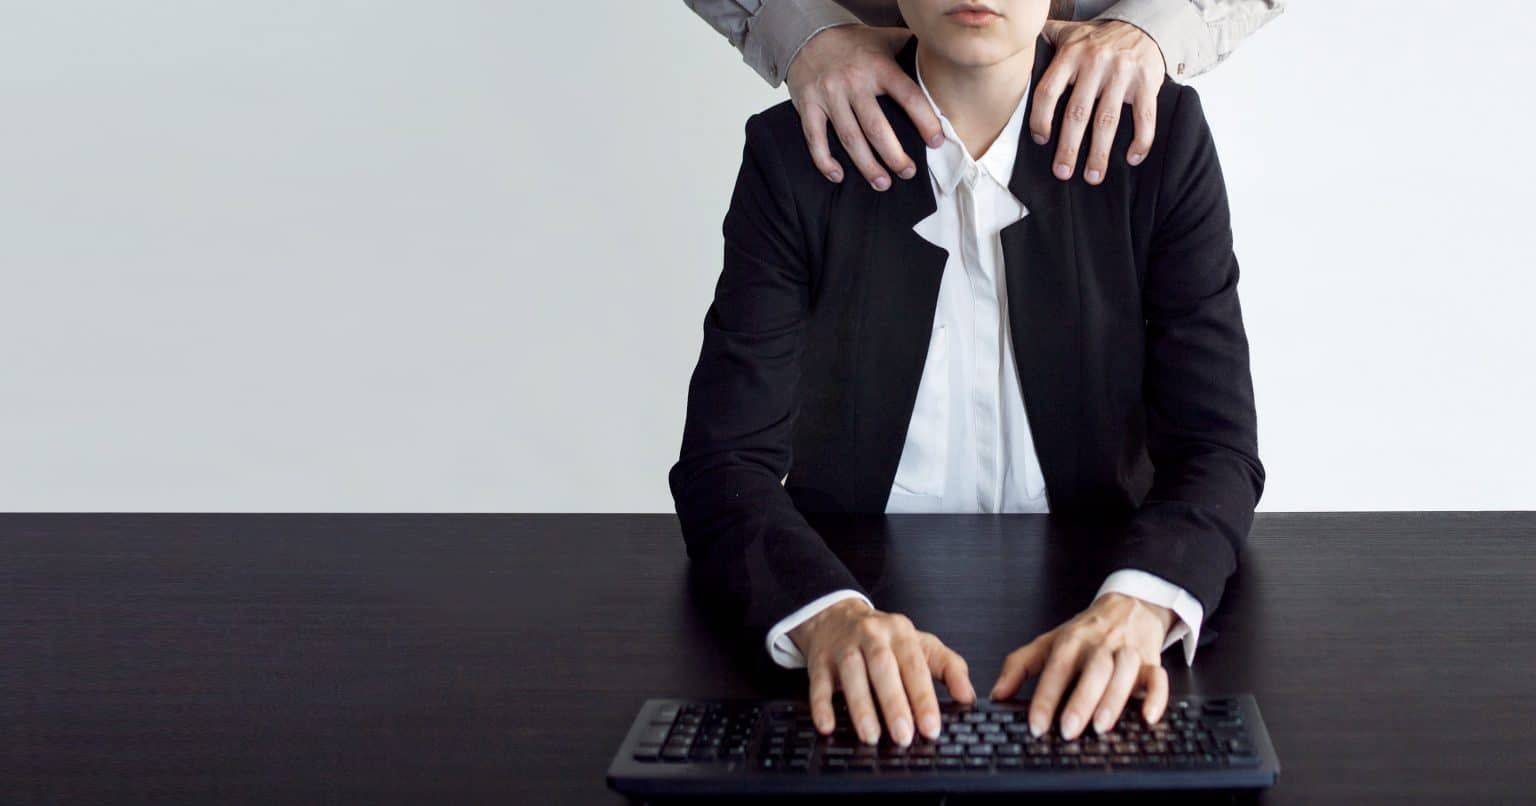 sexual harassment in Australian workplaces is rife